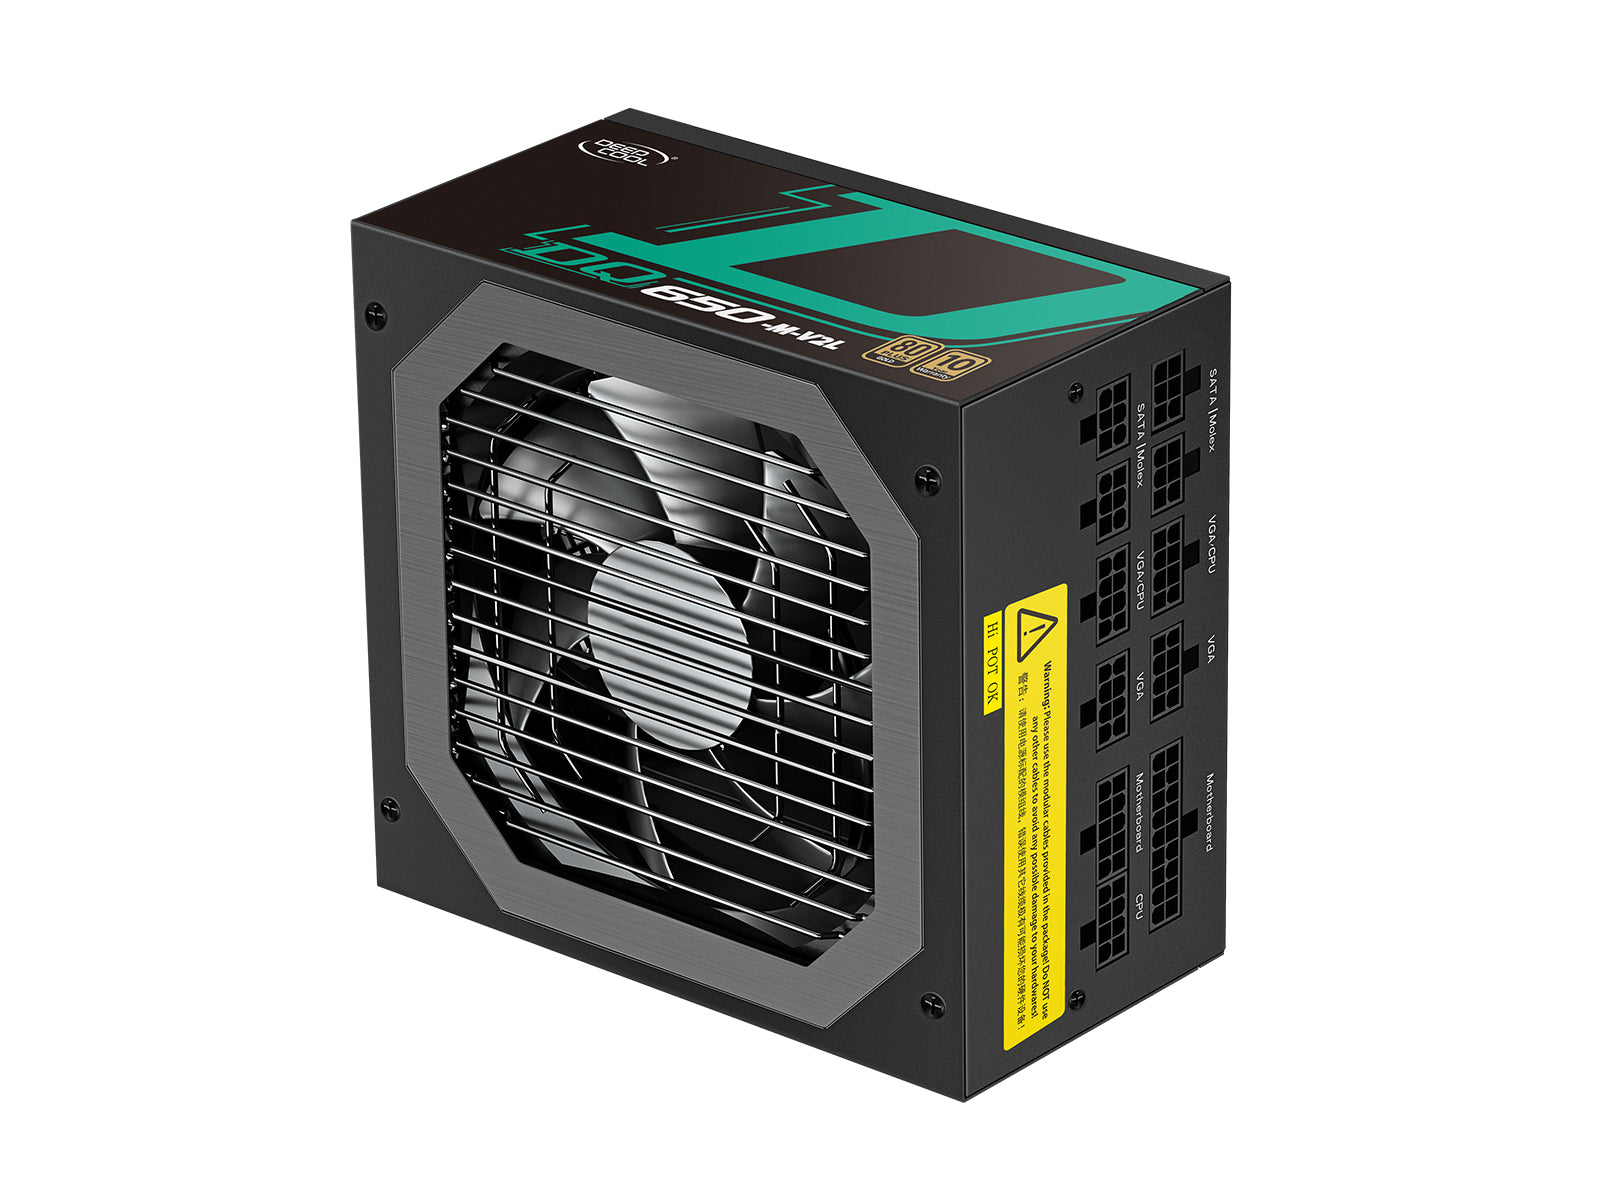 Deepcool GamerStorm DQ650-M-V2L Full-Modular 650W 80+ Gold Power Supply Unit (PSU), Japanese Capacitors, 10-Year Warranty